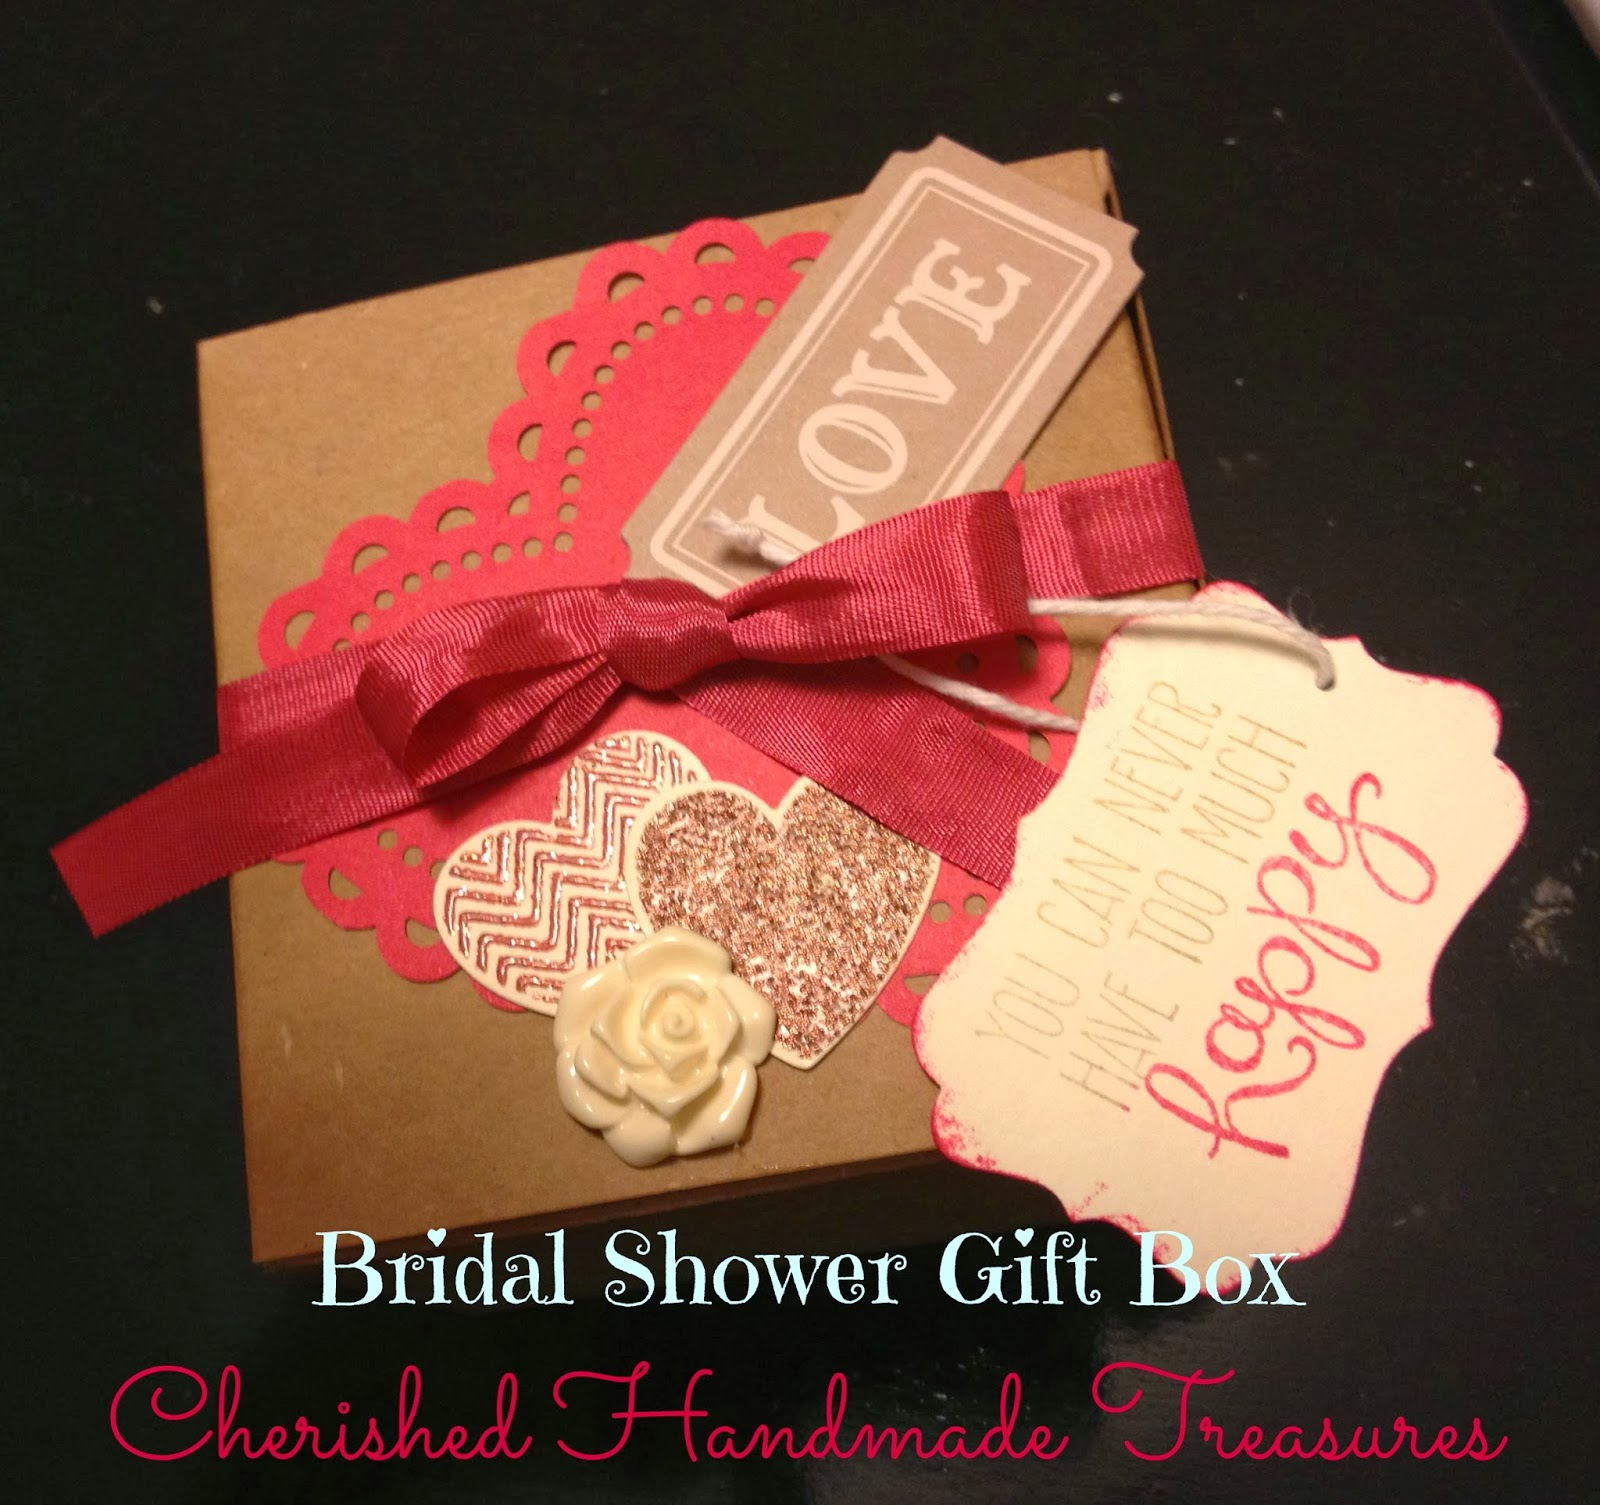 Etiquette For Wedding Gifts When Not Attending : Wedding shower gift etiquette cost - Wedding Shower Gift Etiquette ...